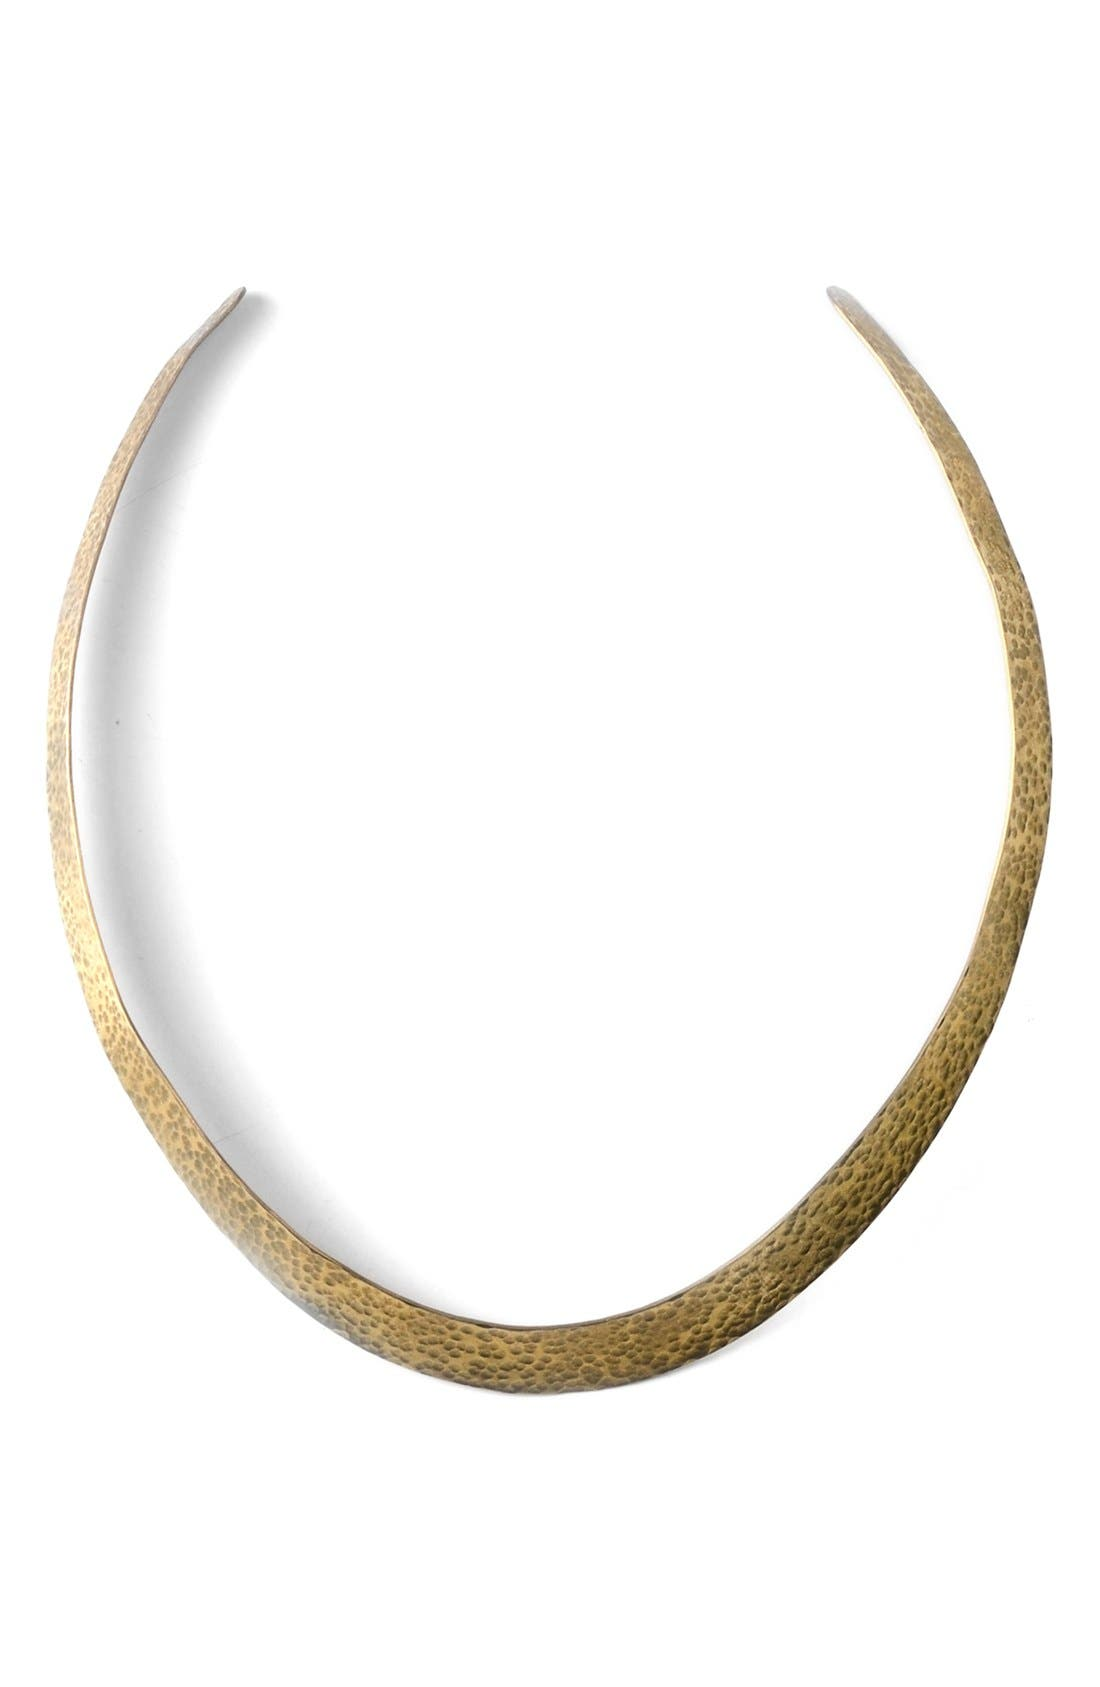 Hammered Plate Collar Necklace,                             Main thumbnail 1, color,                             Brass